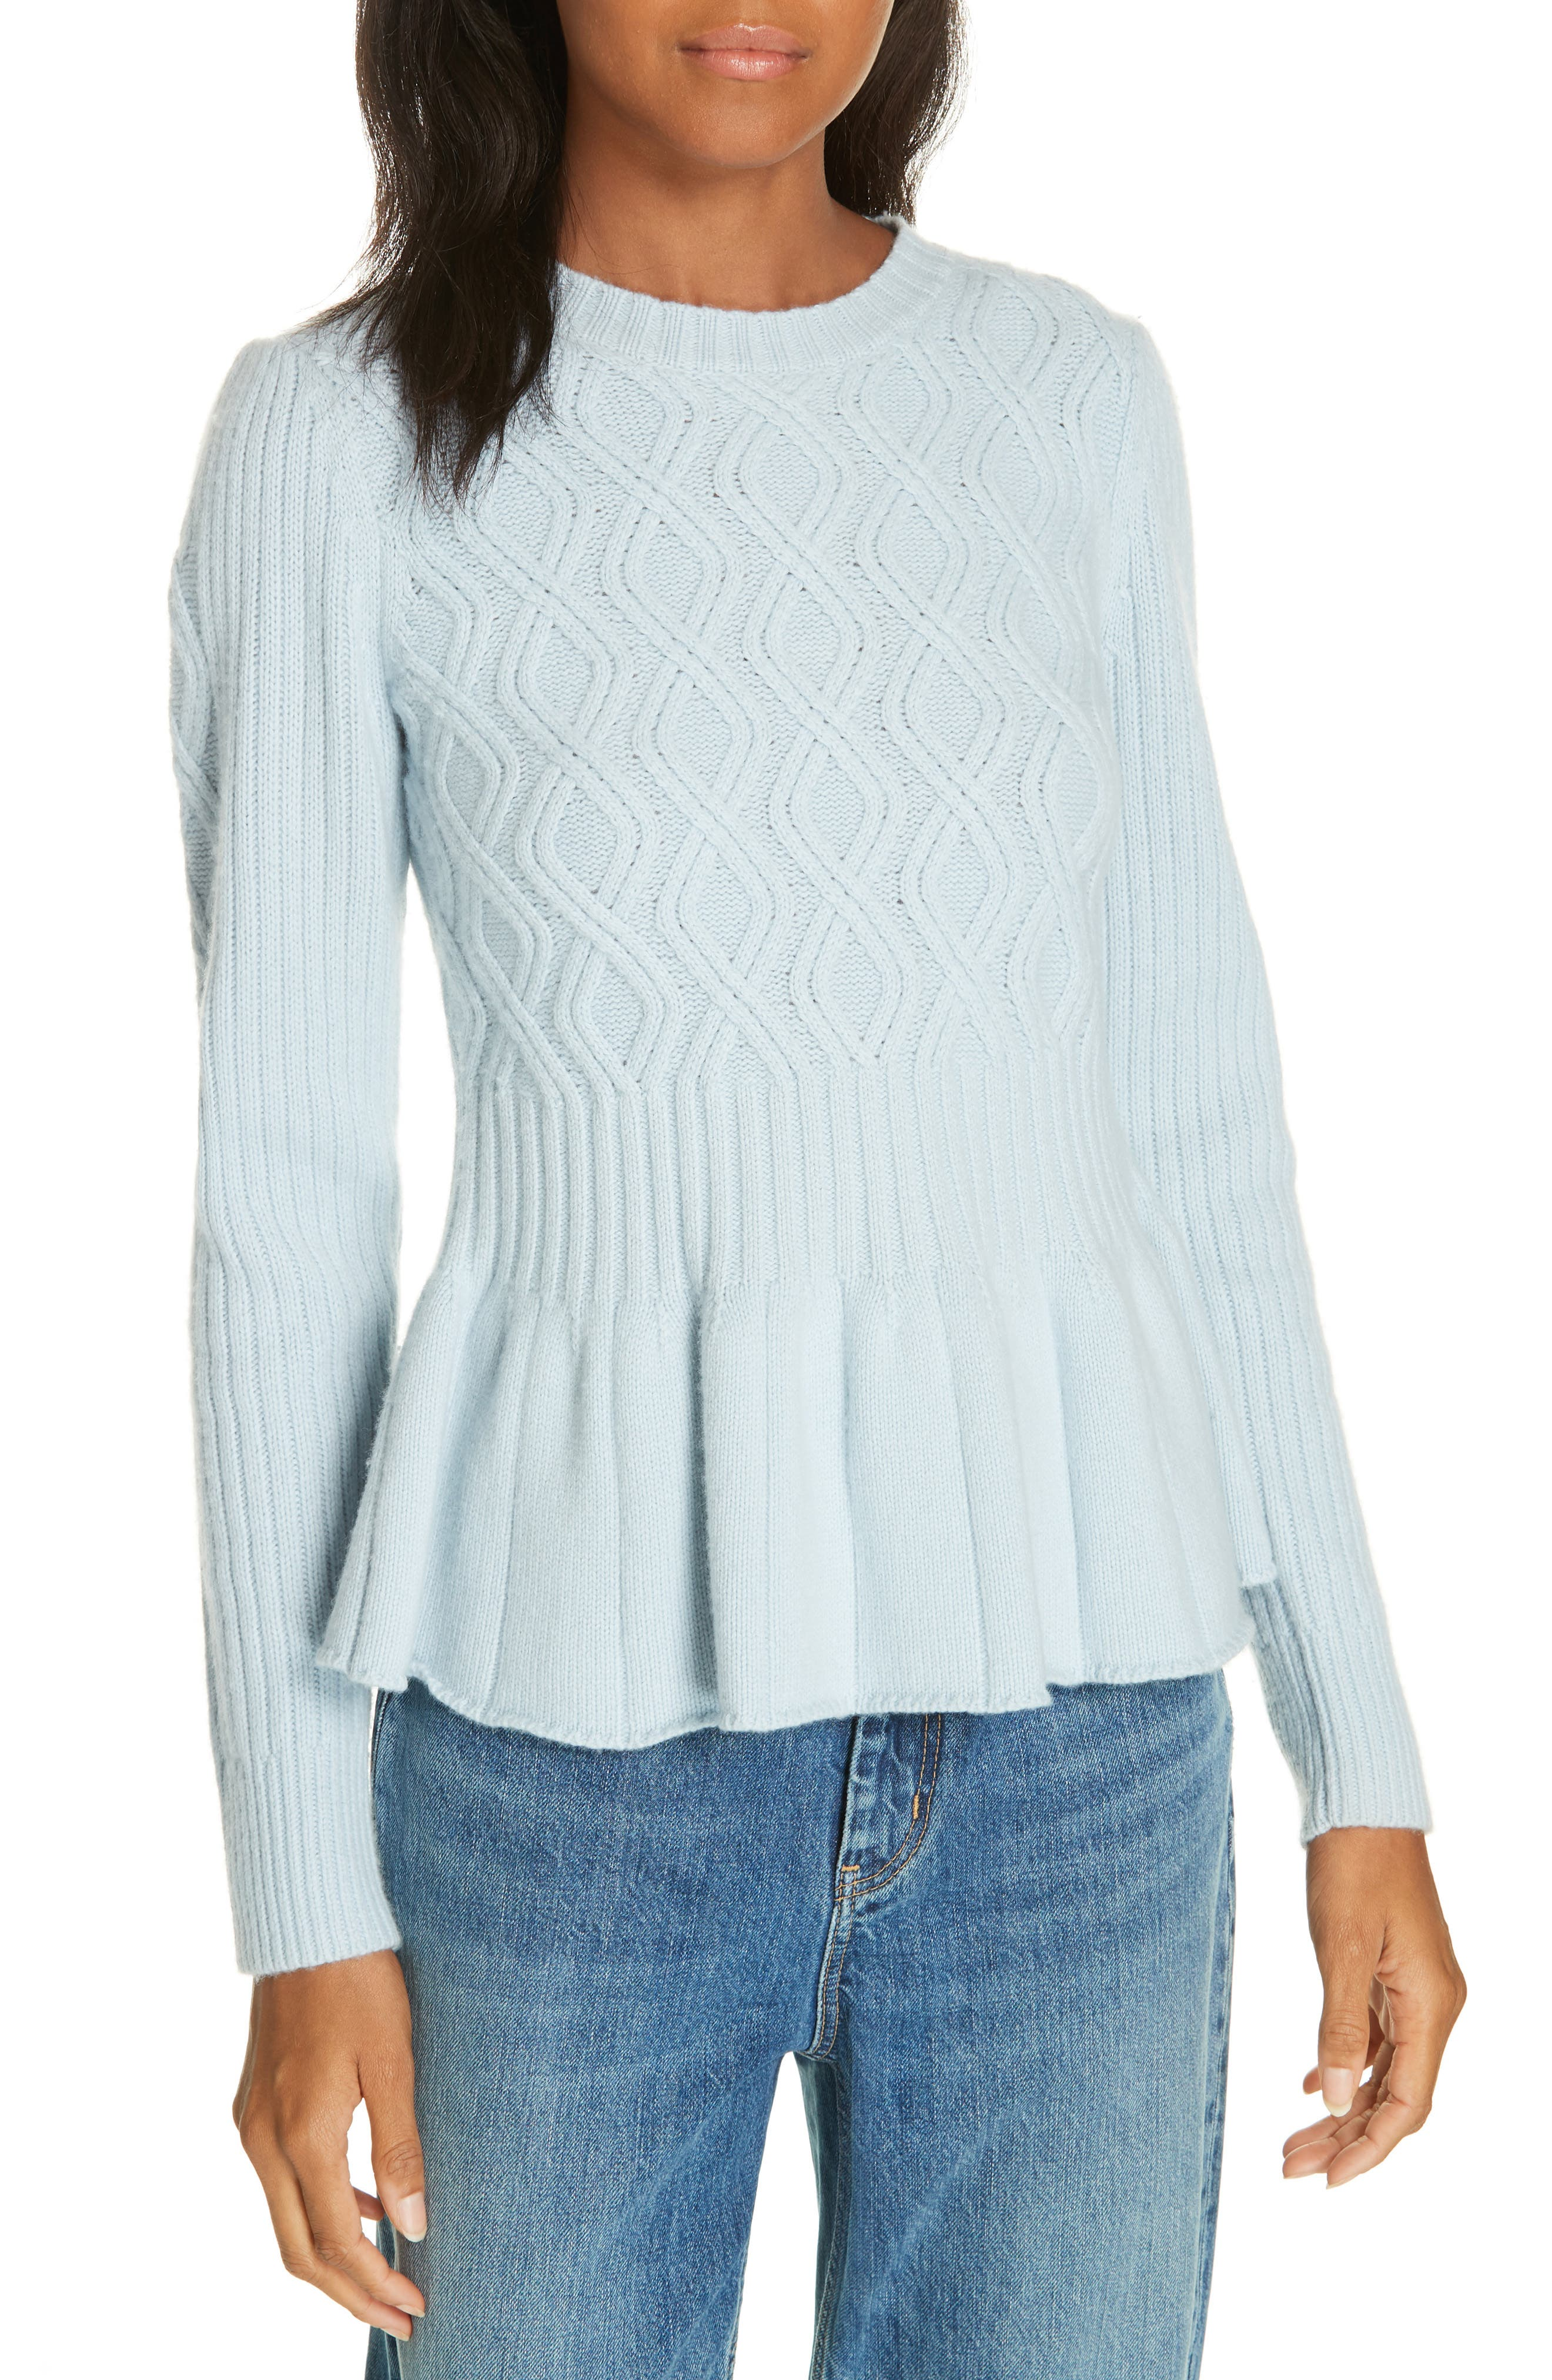 La Vie Rebecca Taylor Spiral Cable Wool Blend Sweater, Blue